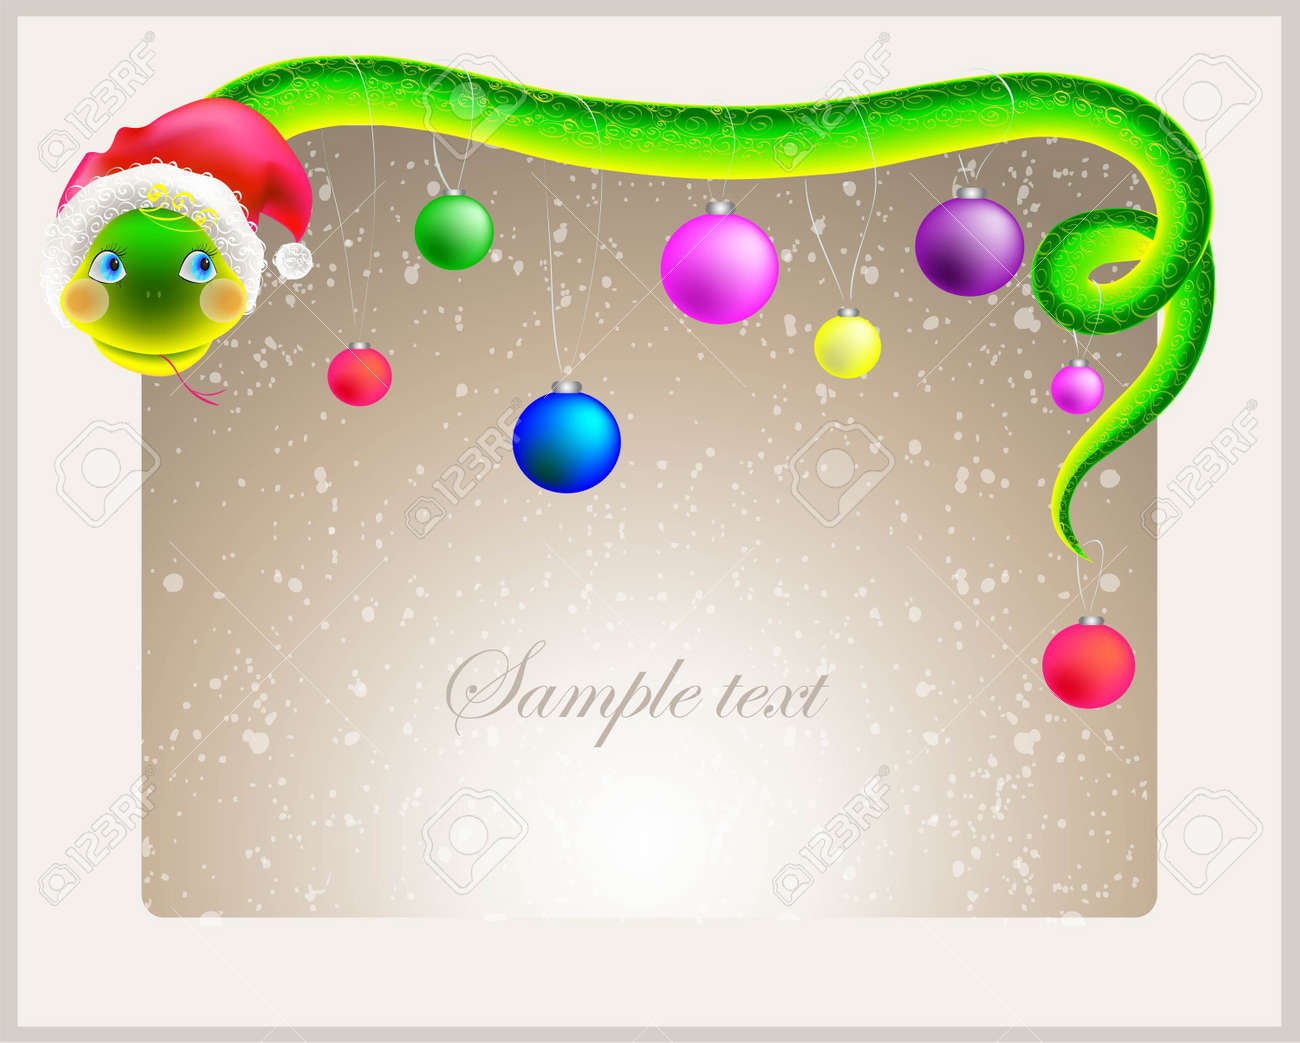 Cute snake  symbol of 2013 year  in Santa s hat  Greeting card with a snake in a hat santa Stock Vector - 16446694